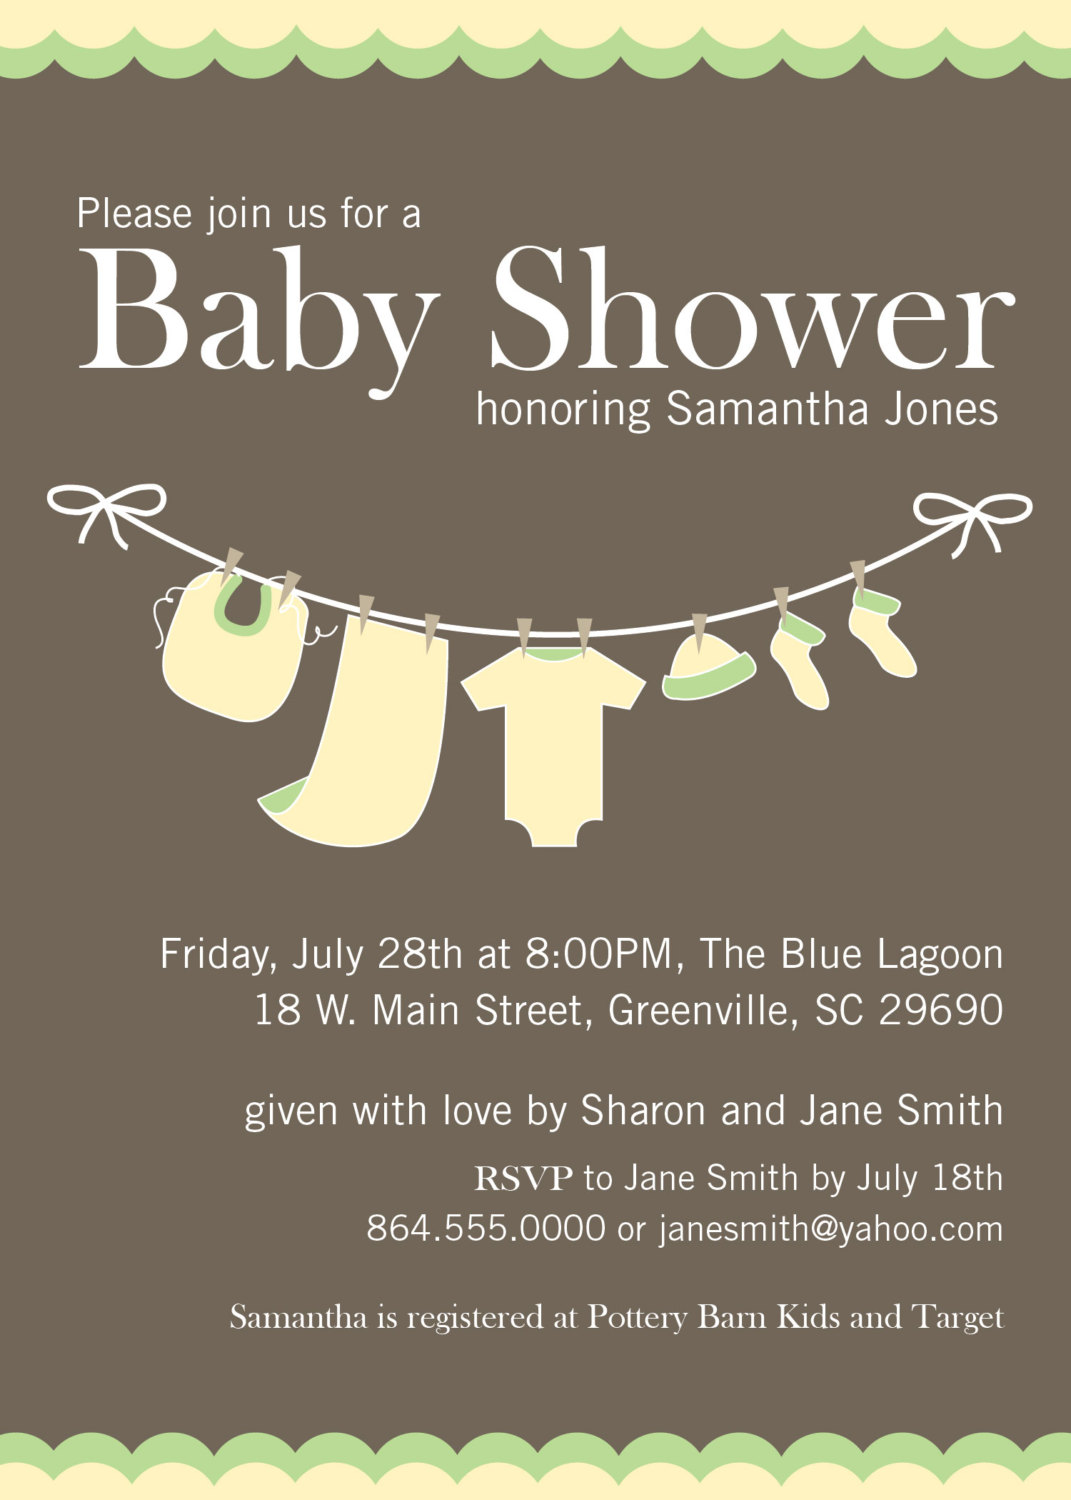 Gender neutral baby shower invitations as an additional inspiration for a  attractive baby shower invitation design with attractive layout 1 - Neutral Baby Shower PNG